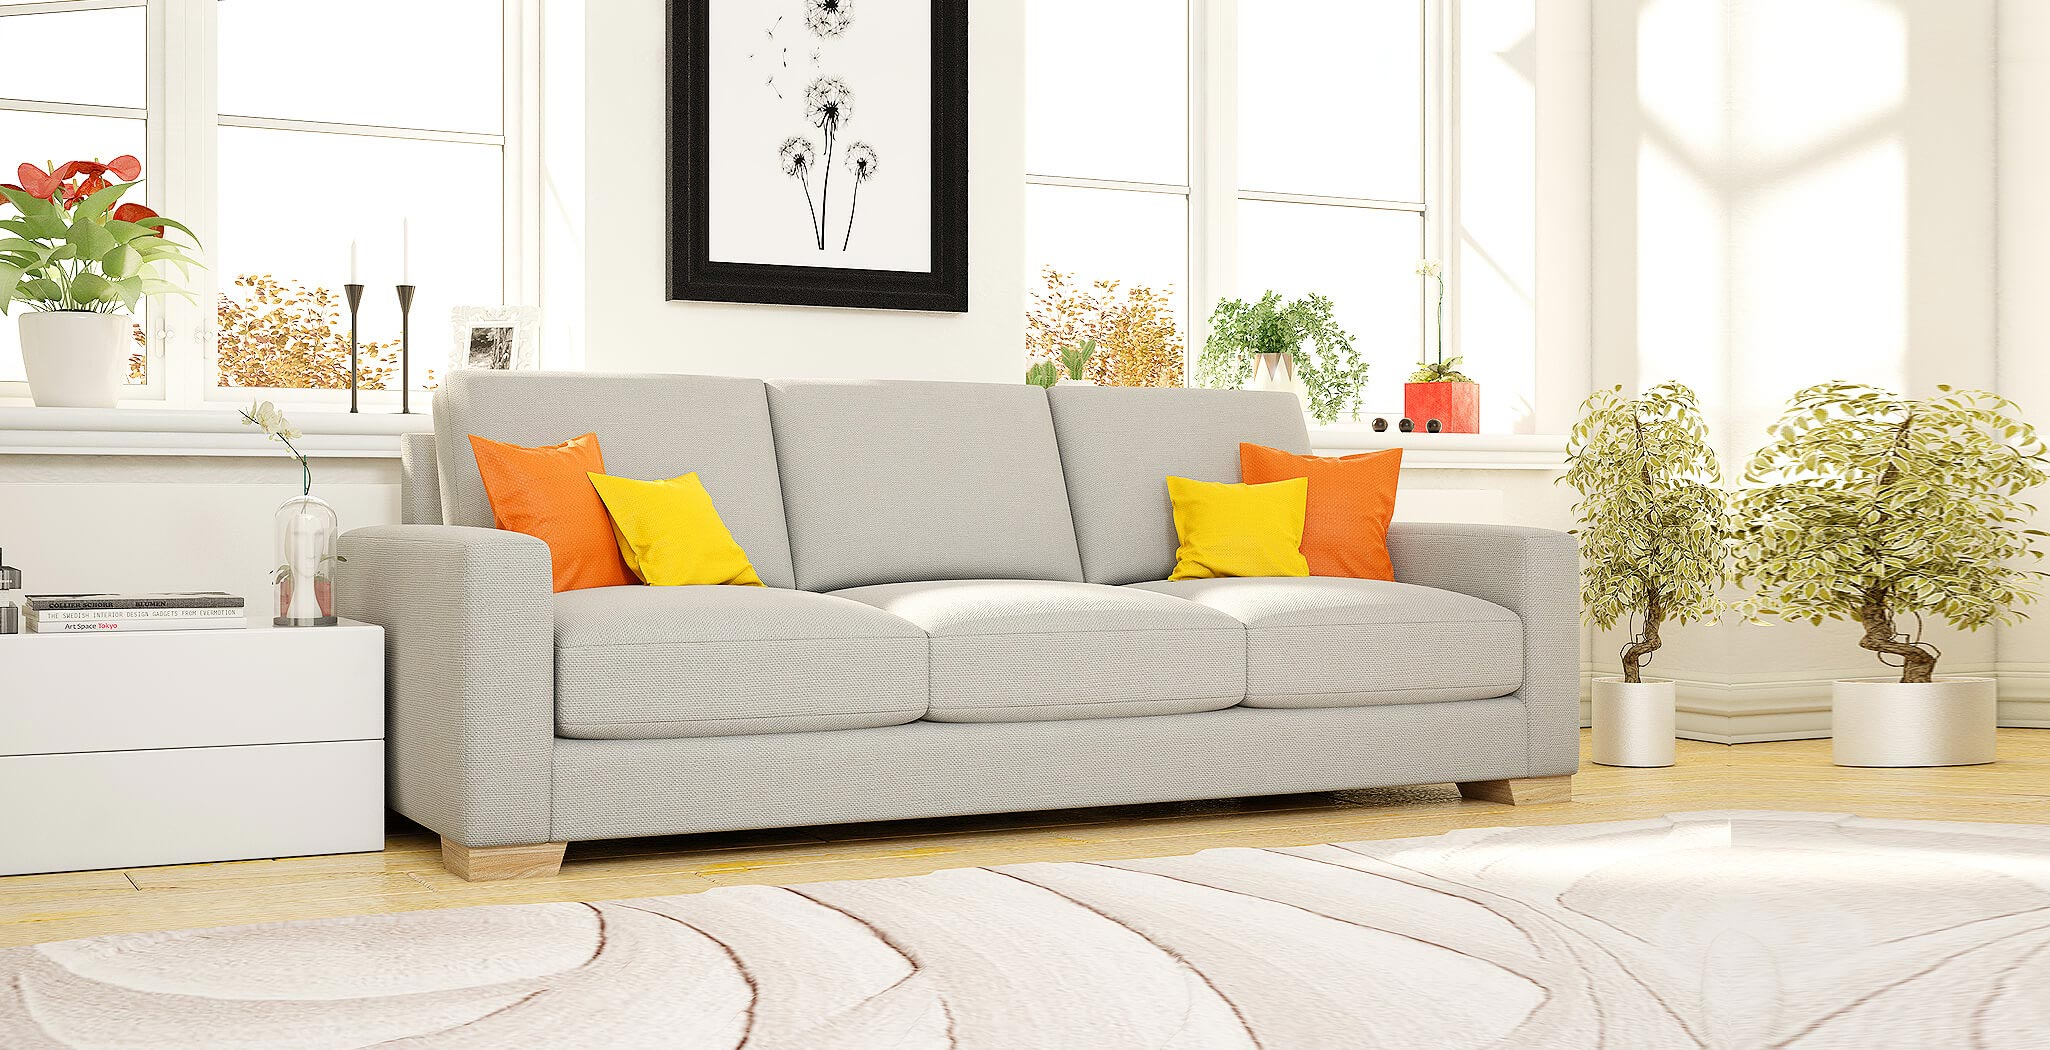 london sofa furniture gallery 2